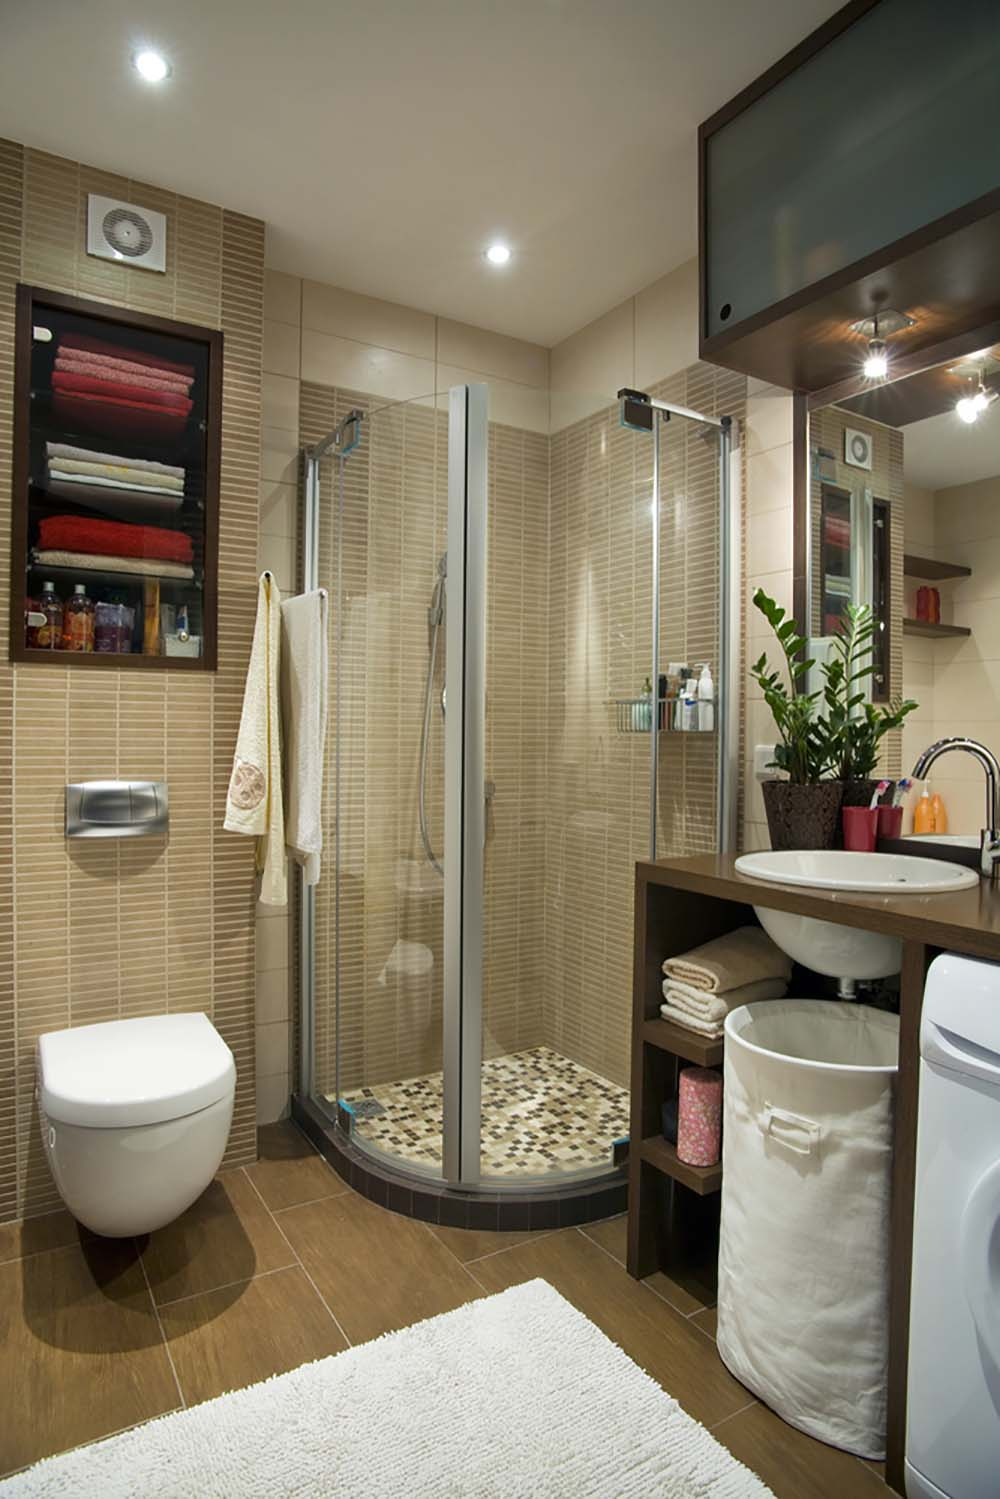 51 beautiful and functional small bathrooms - Bathroom shower designs small spaces ...